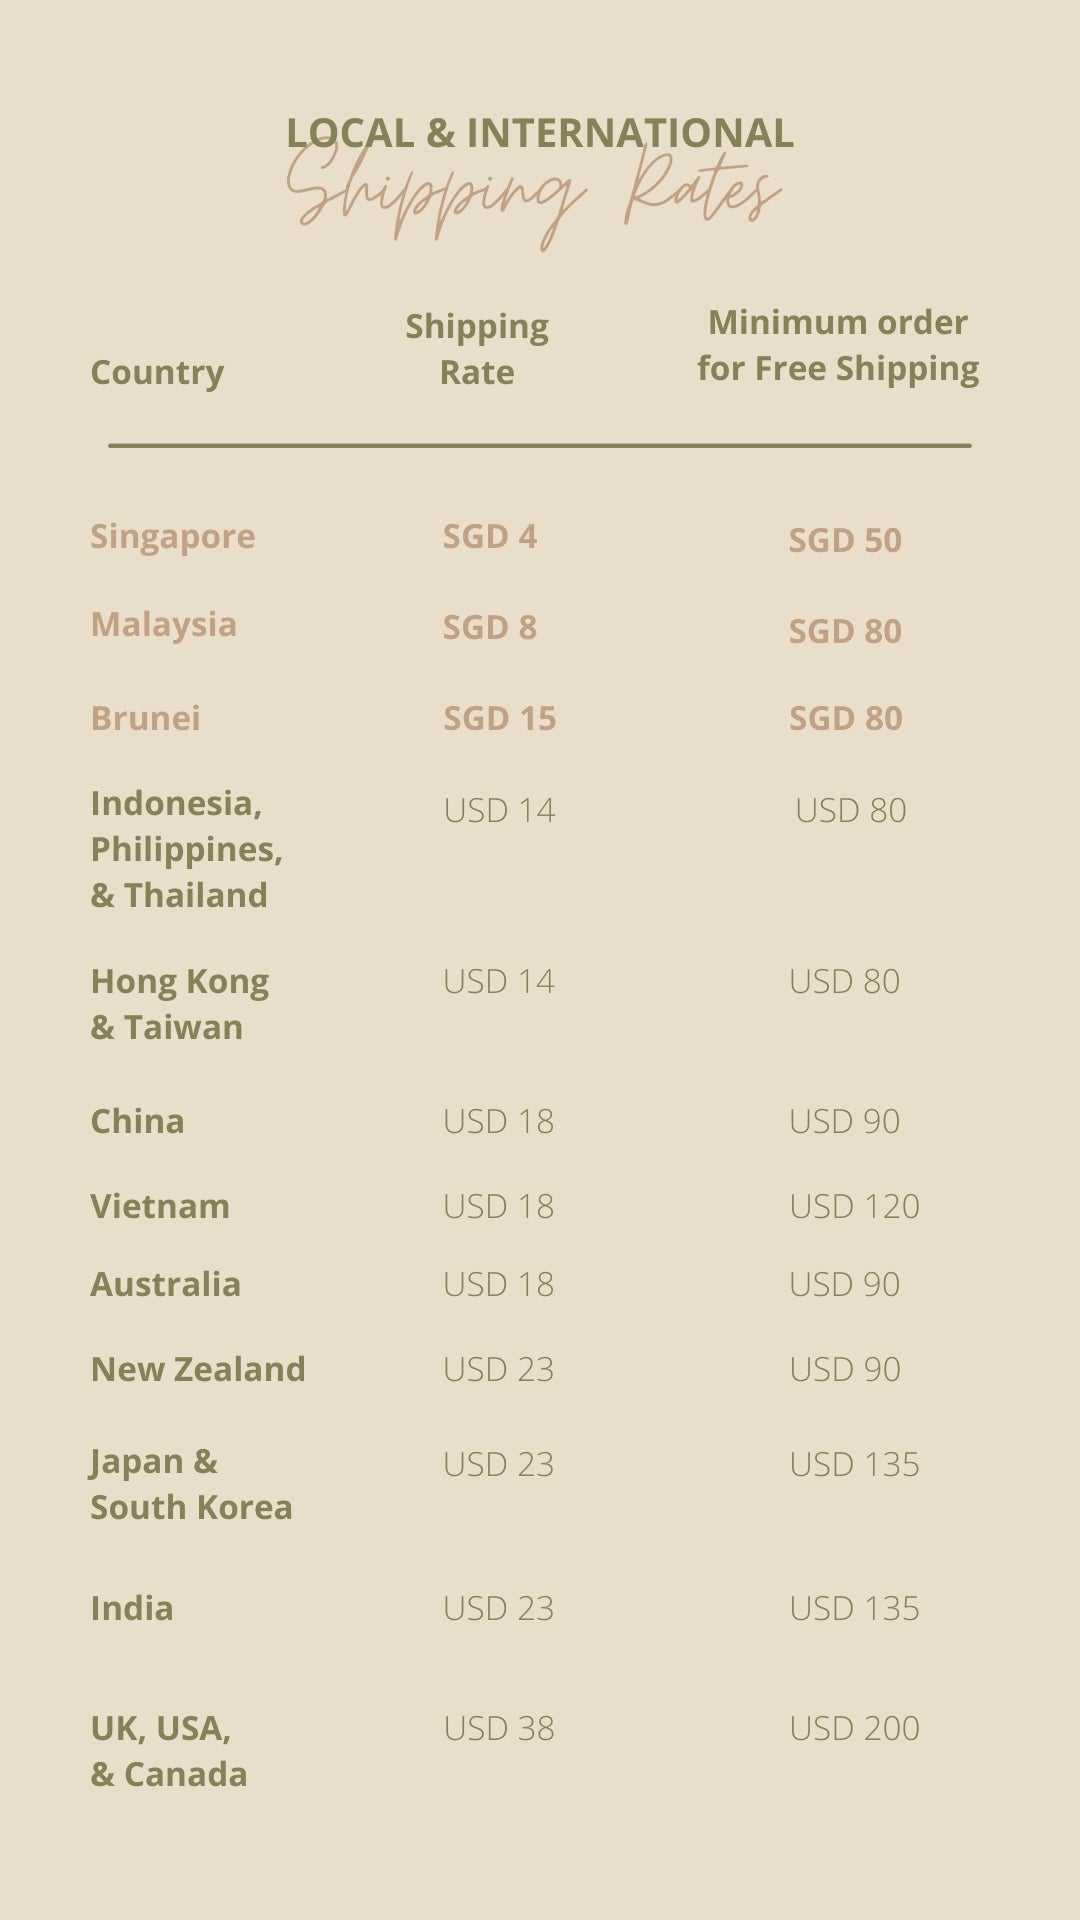 Yacht 21 Shipping Rates